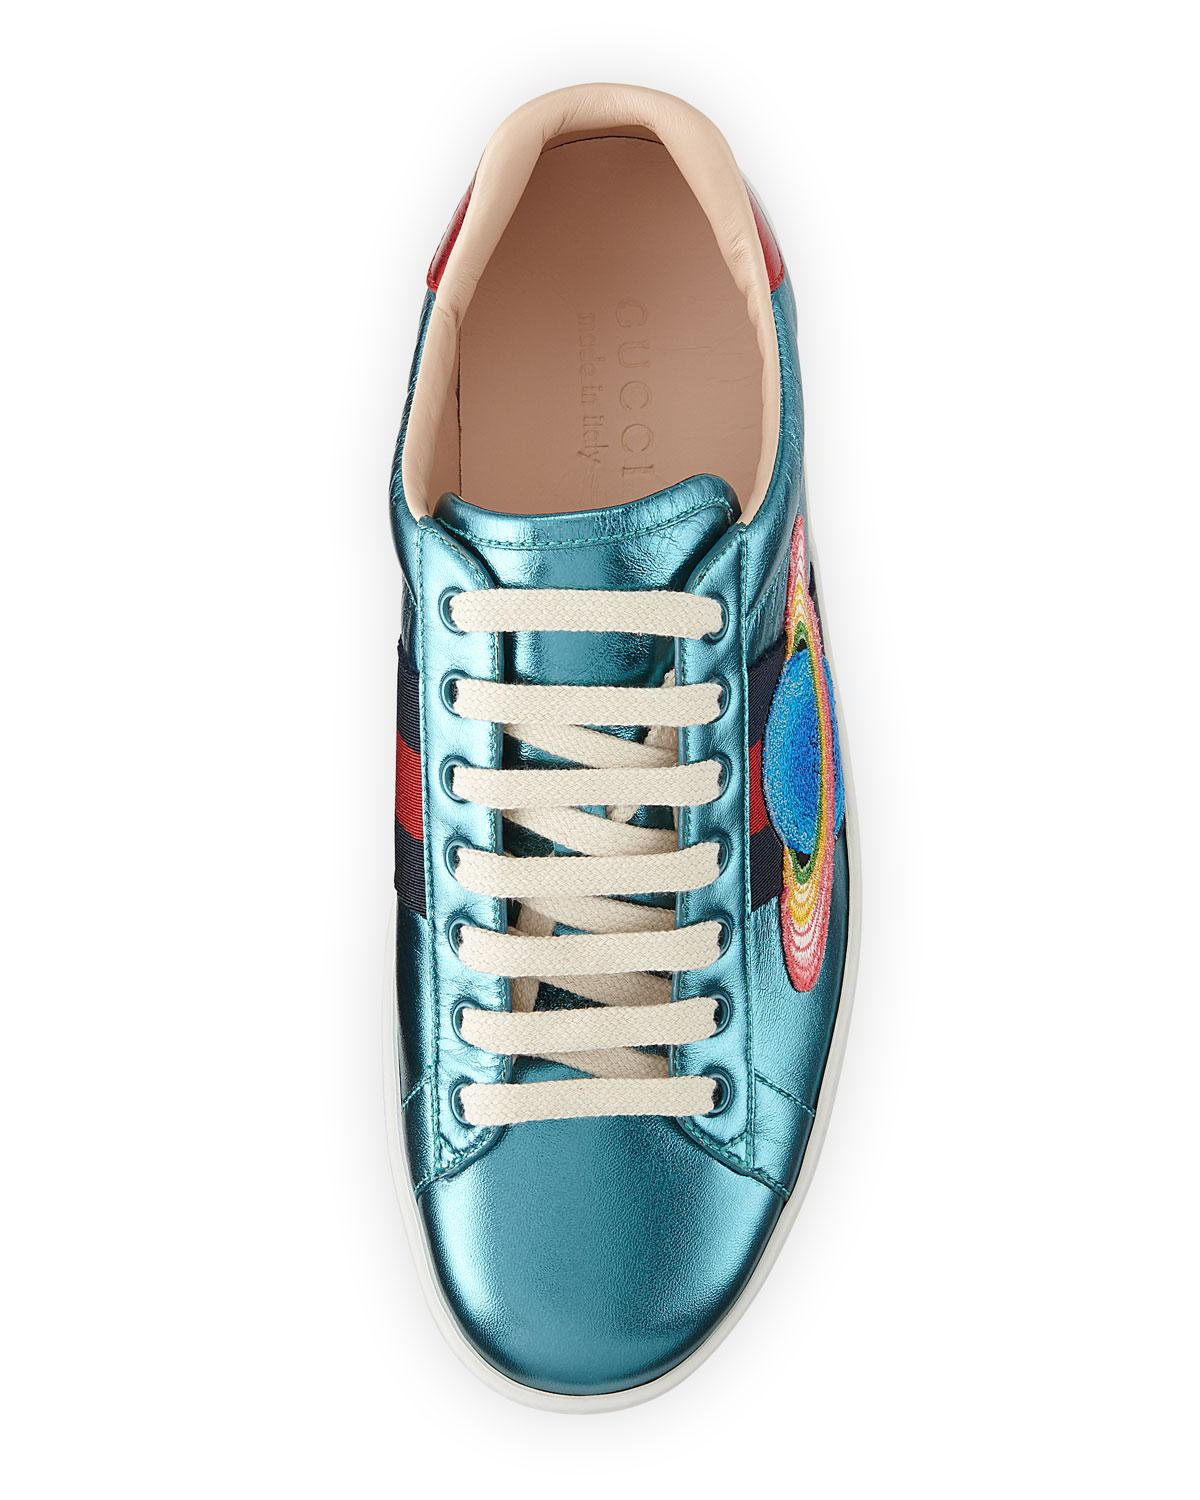 Gucci Ace Metallic Leather Sneaker - Lyst